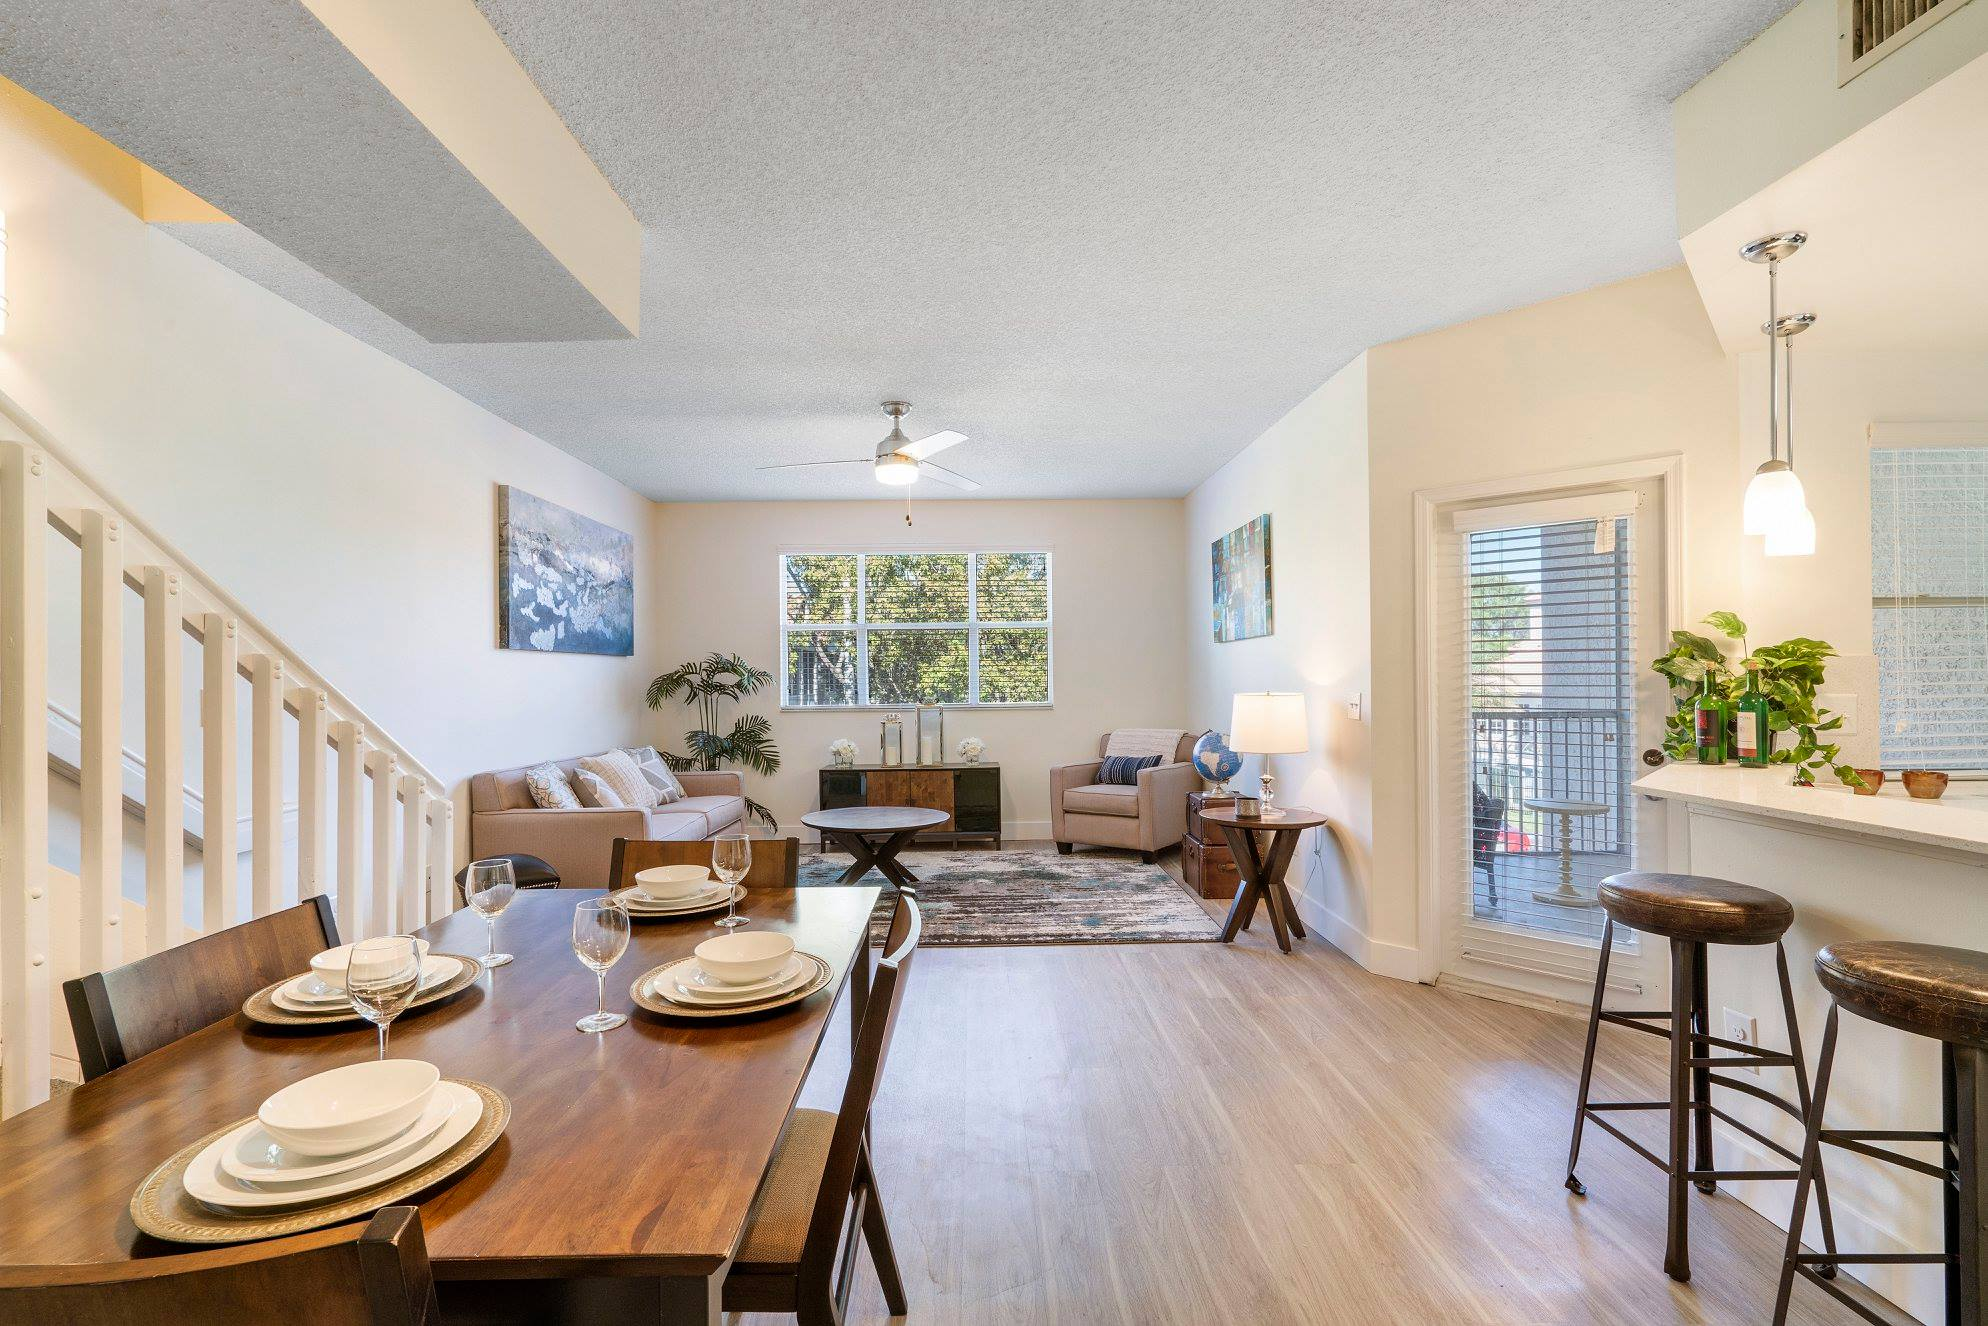 Open Floor Plans at Windsor Castle Apartments in Coral Springs, Florida